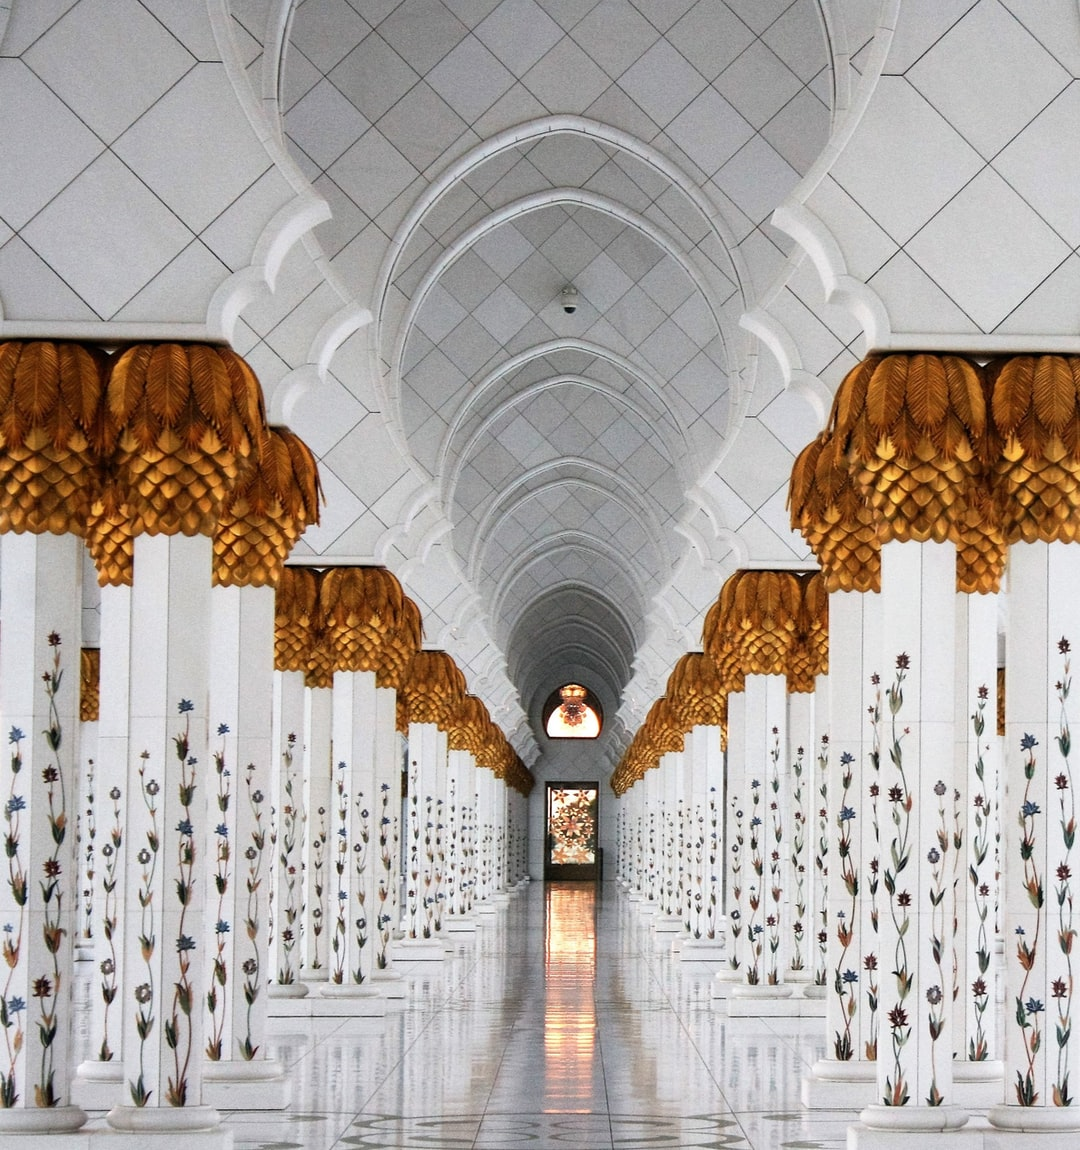 This photo was taken in Sheikh Zayed Mosque in Abu Dhabi, one of the most beautiful mosques i have ever been to. a must visit. The amount of Architecture and handcraft is astonishing. highly recommended.